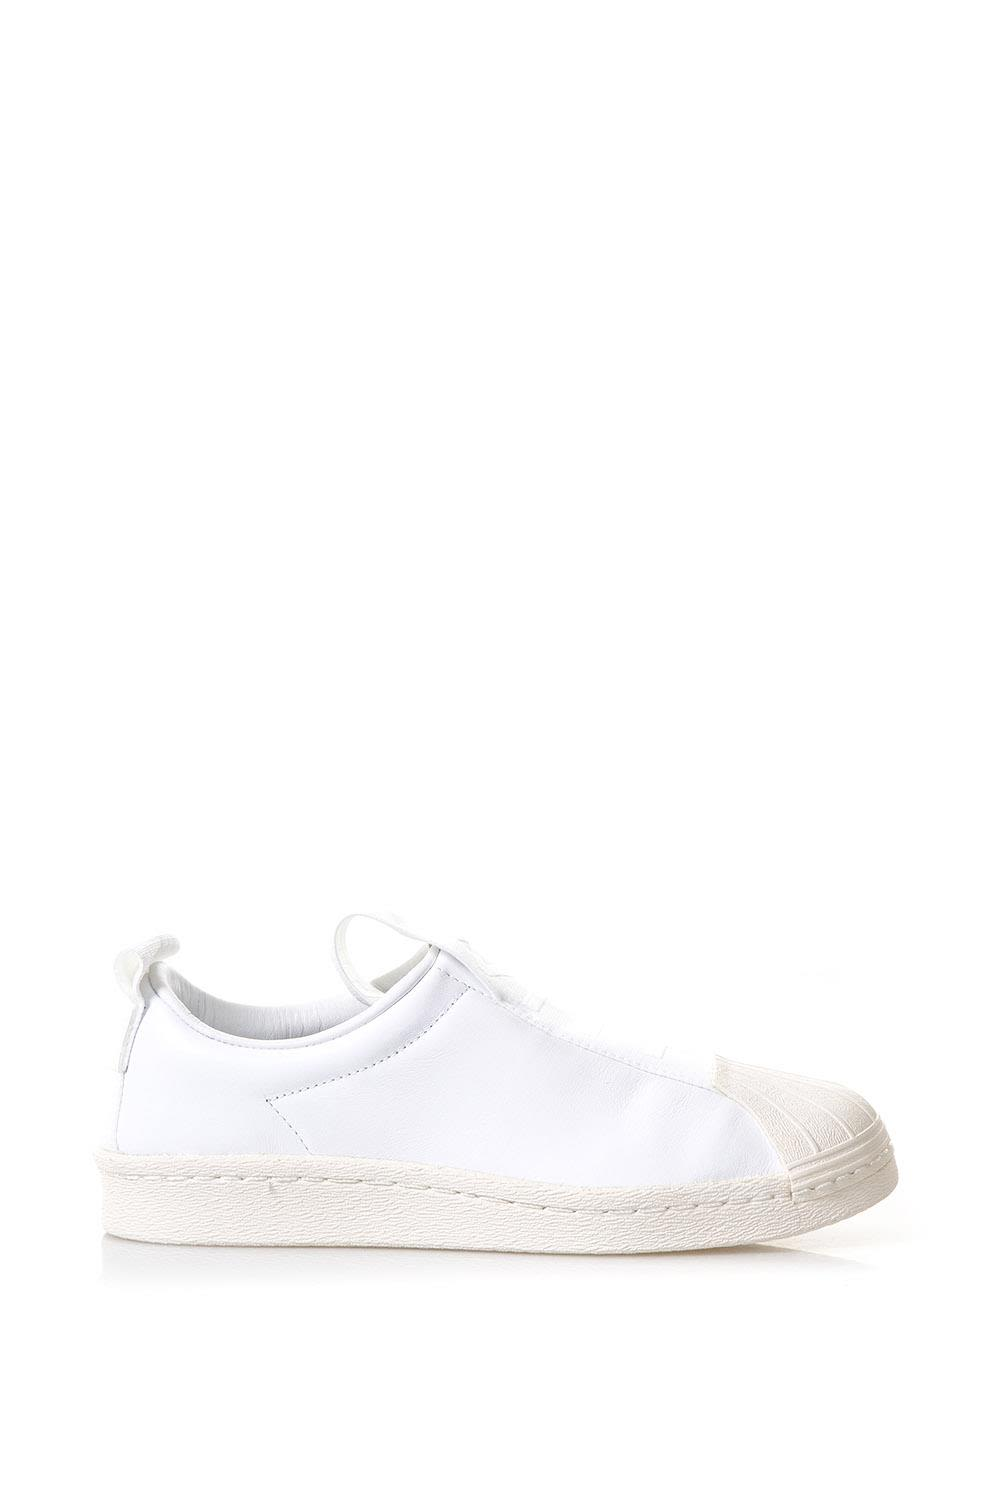 Adidas Originals Superstar Leather Slip-on Sneakers